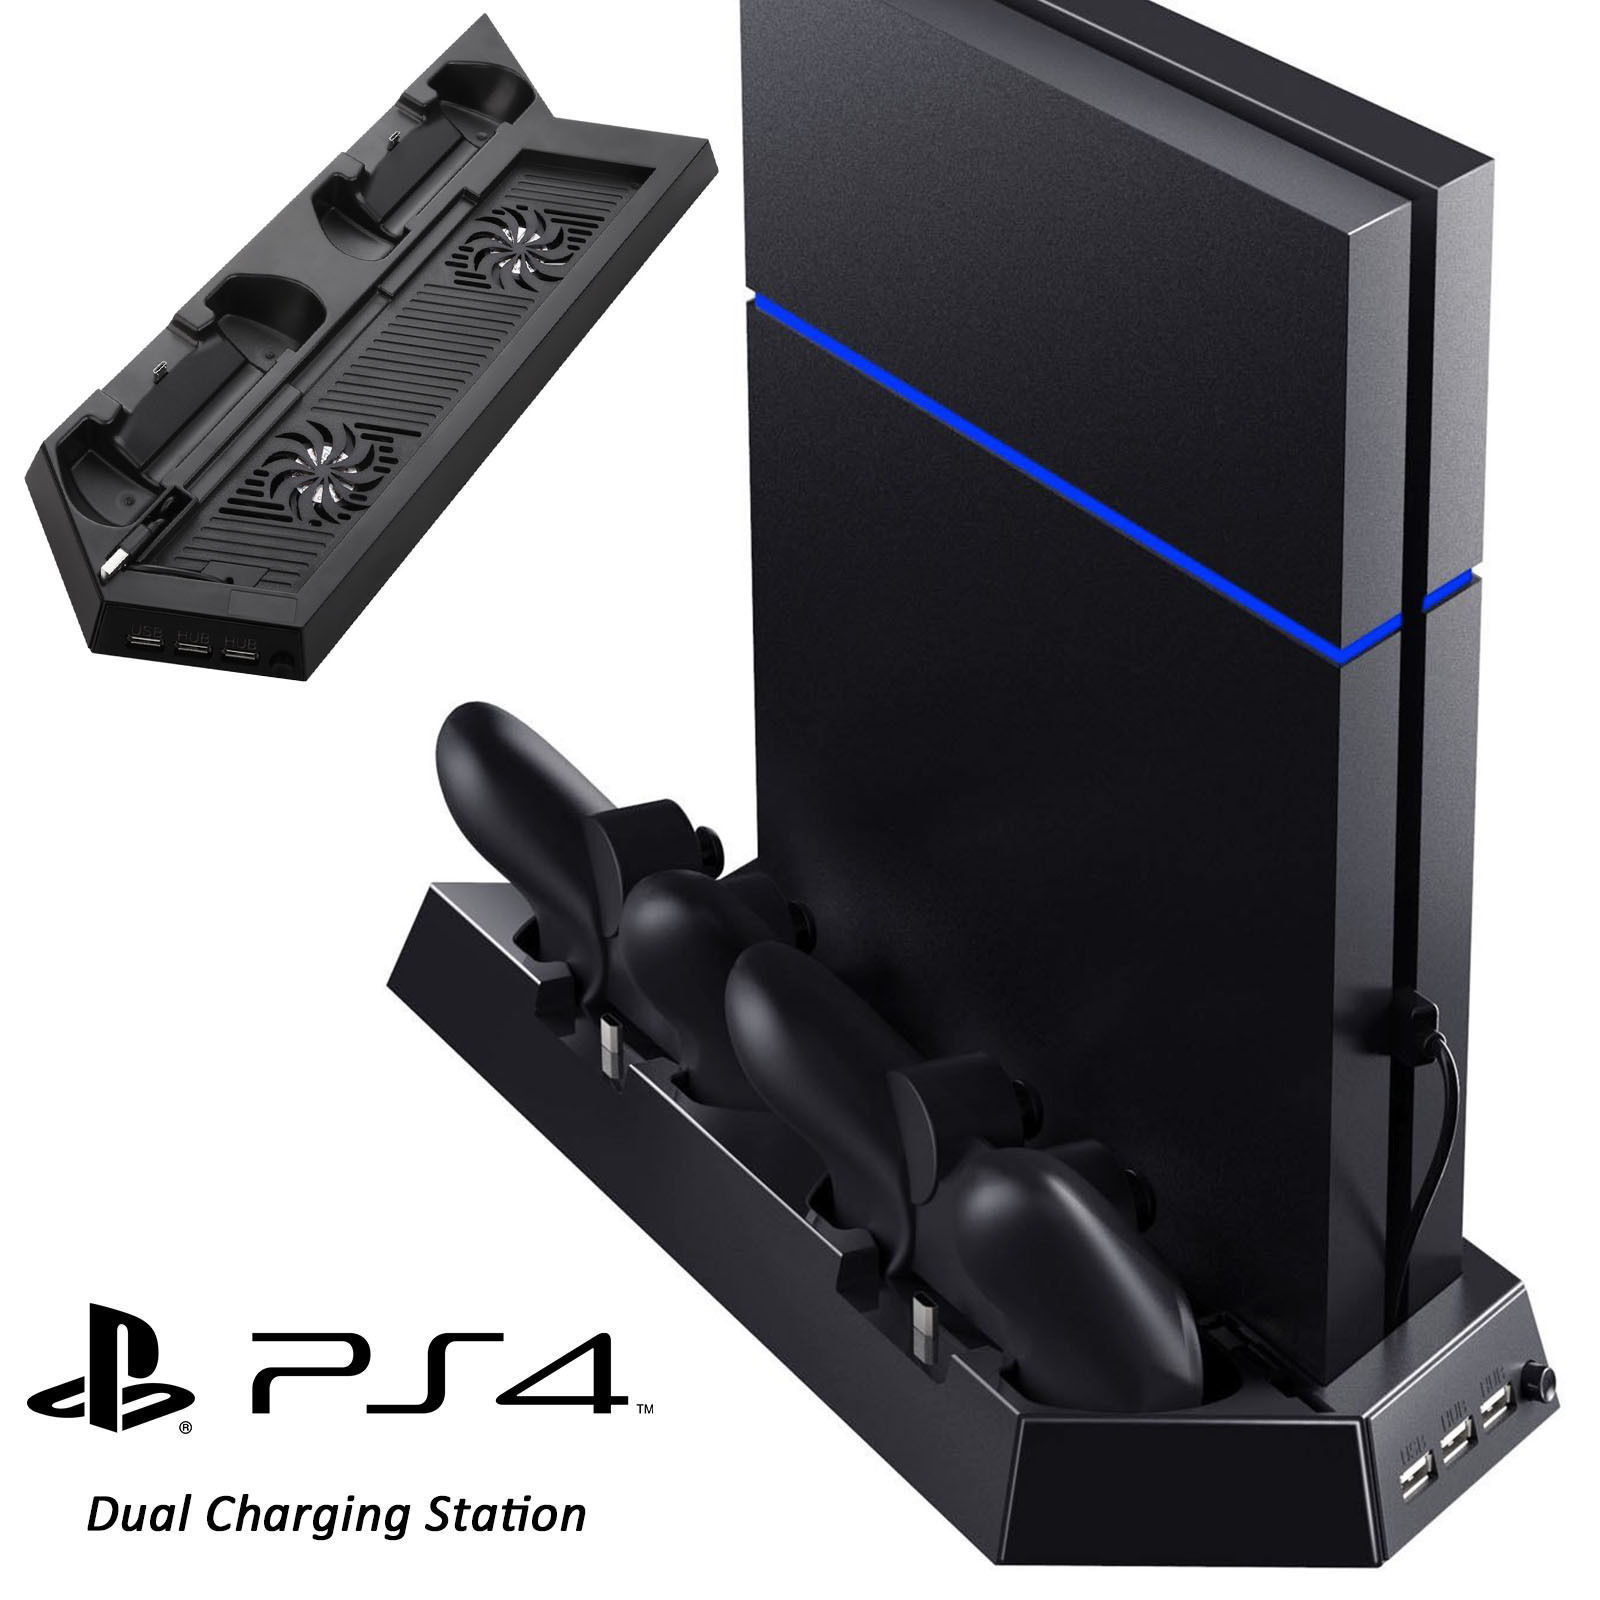 Vertical Stand with Cooling Fan for Sony PS4,2 Controllers Charging Dock 2 Fan Cooling Station with Dual Charger Ports and USB HUB, for PlayStation 4 Console Dualshock 4